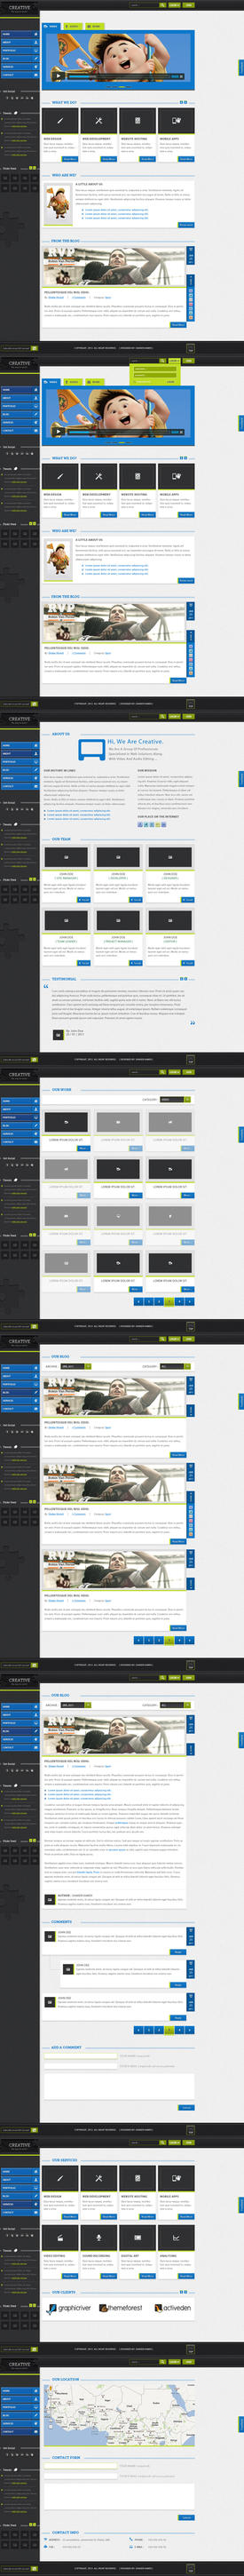 luminous full website html, css Template for Sale by ahmedchan